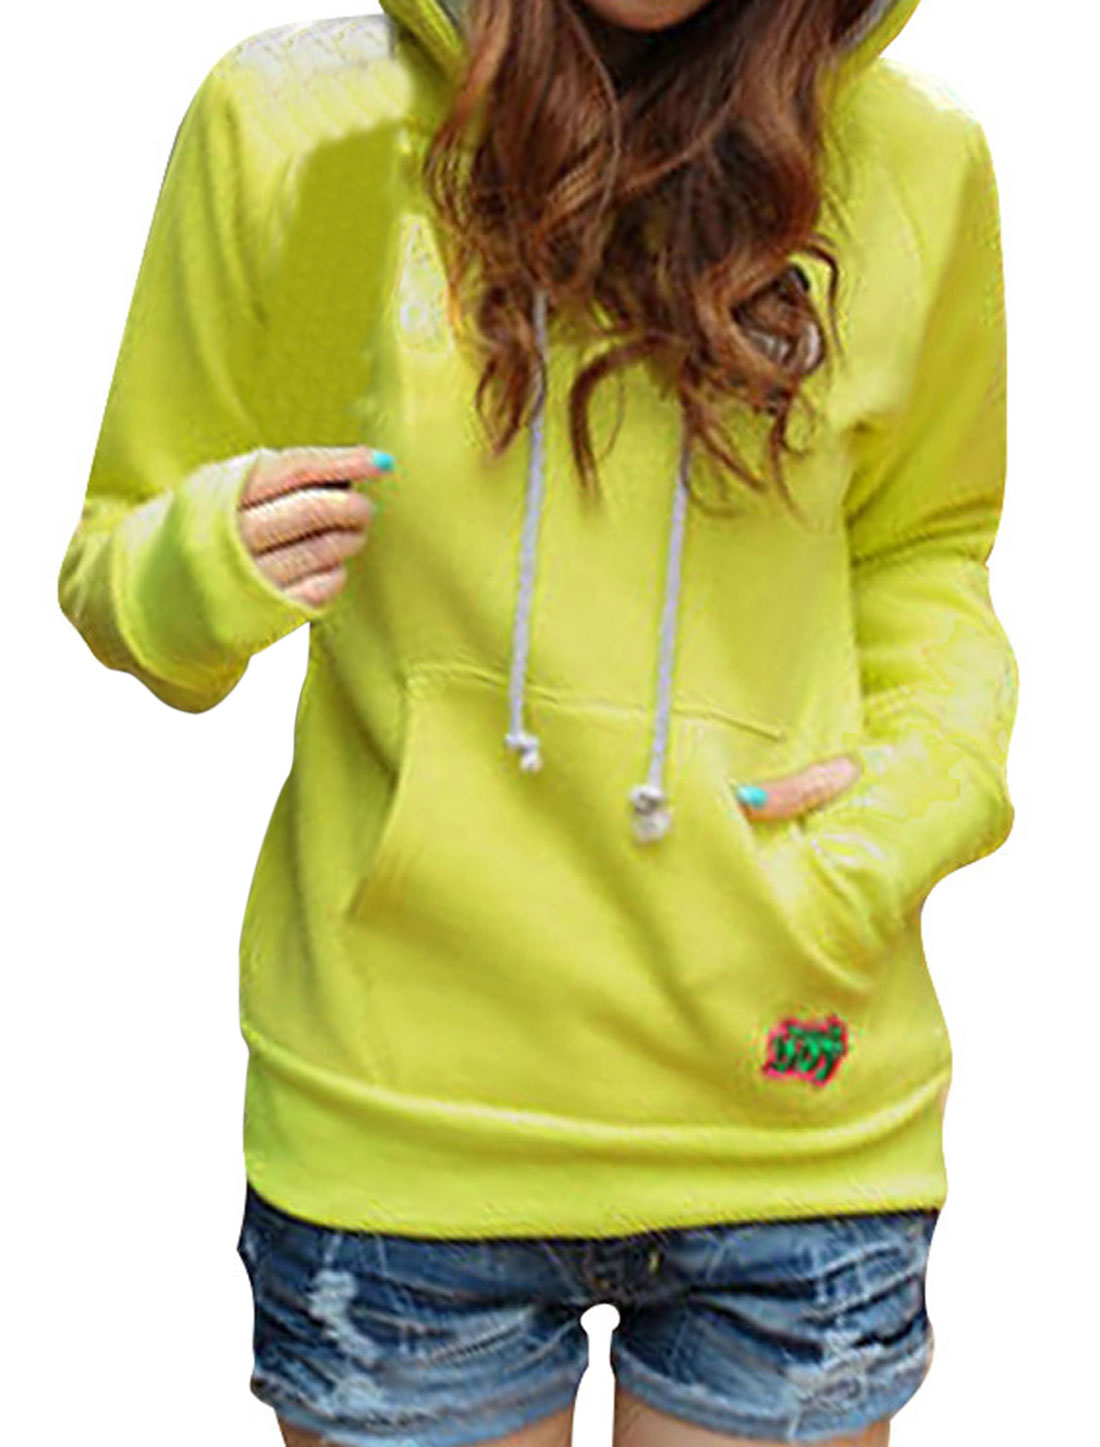 Women's Long Sleeves Pullover Panda Pattern Warm Yellow Hoodie S